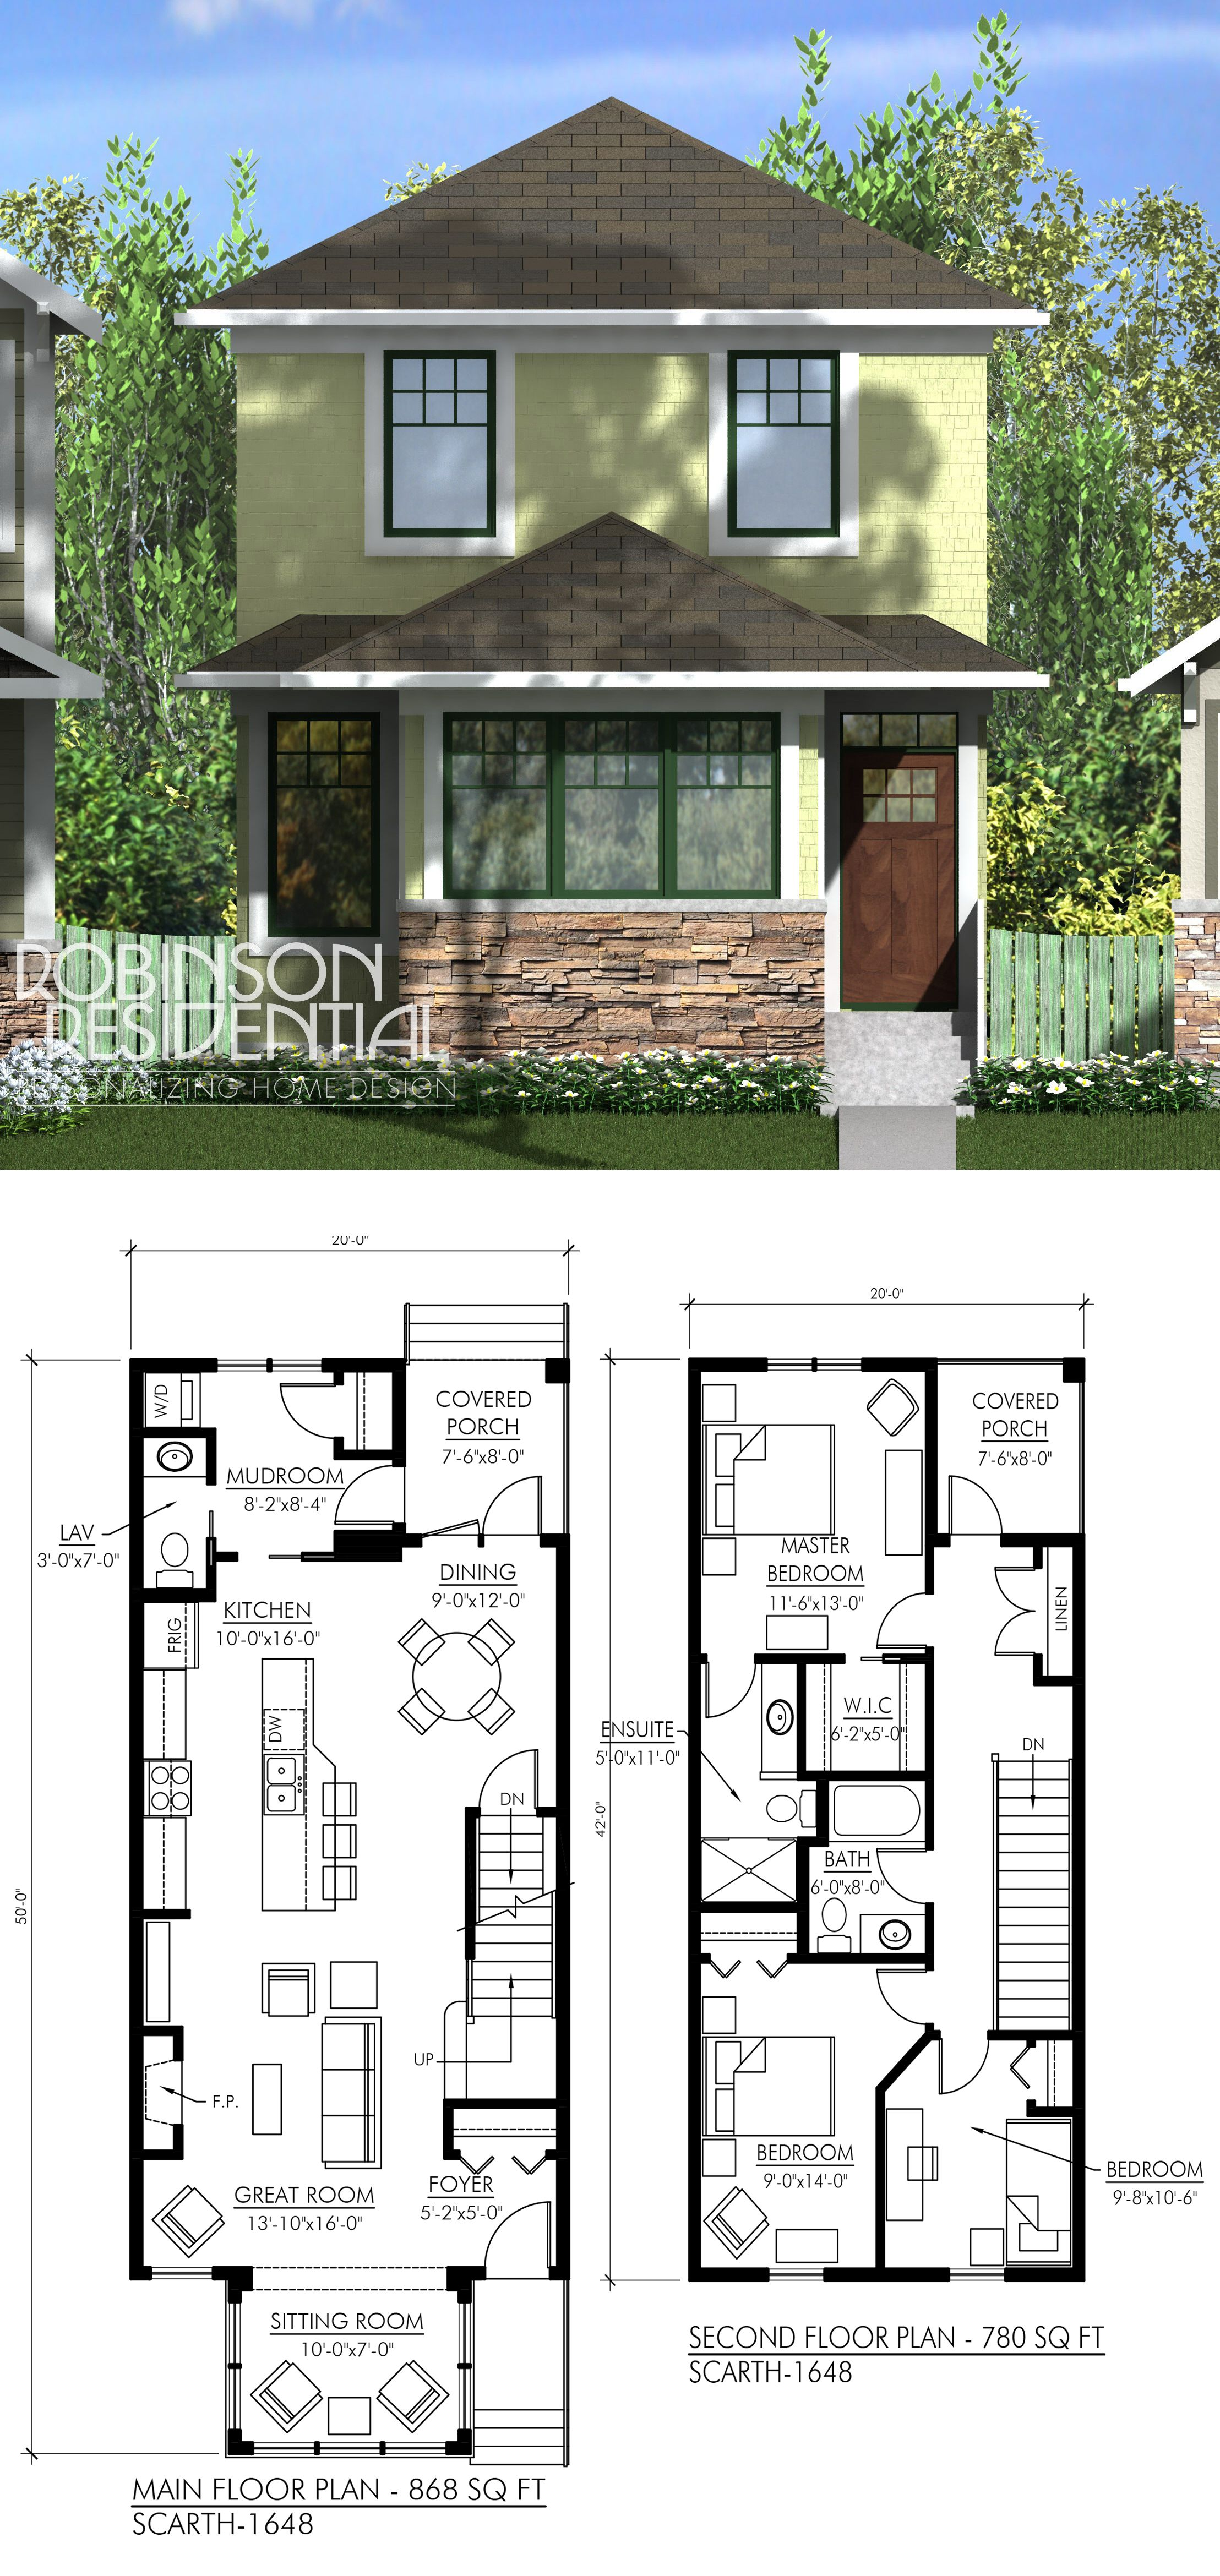 dd3f0d1b216dabaa0fc152a158724655 Top Result 52 Best Of Craftsman Style Home Plans Photography 2017 Hdj5